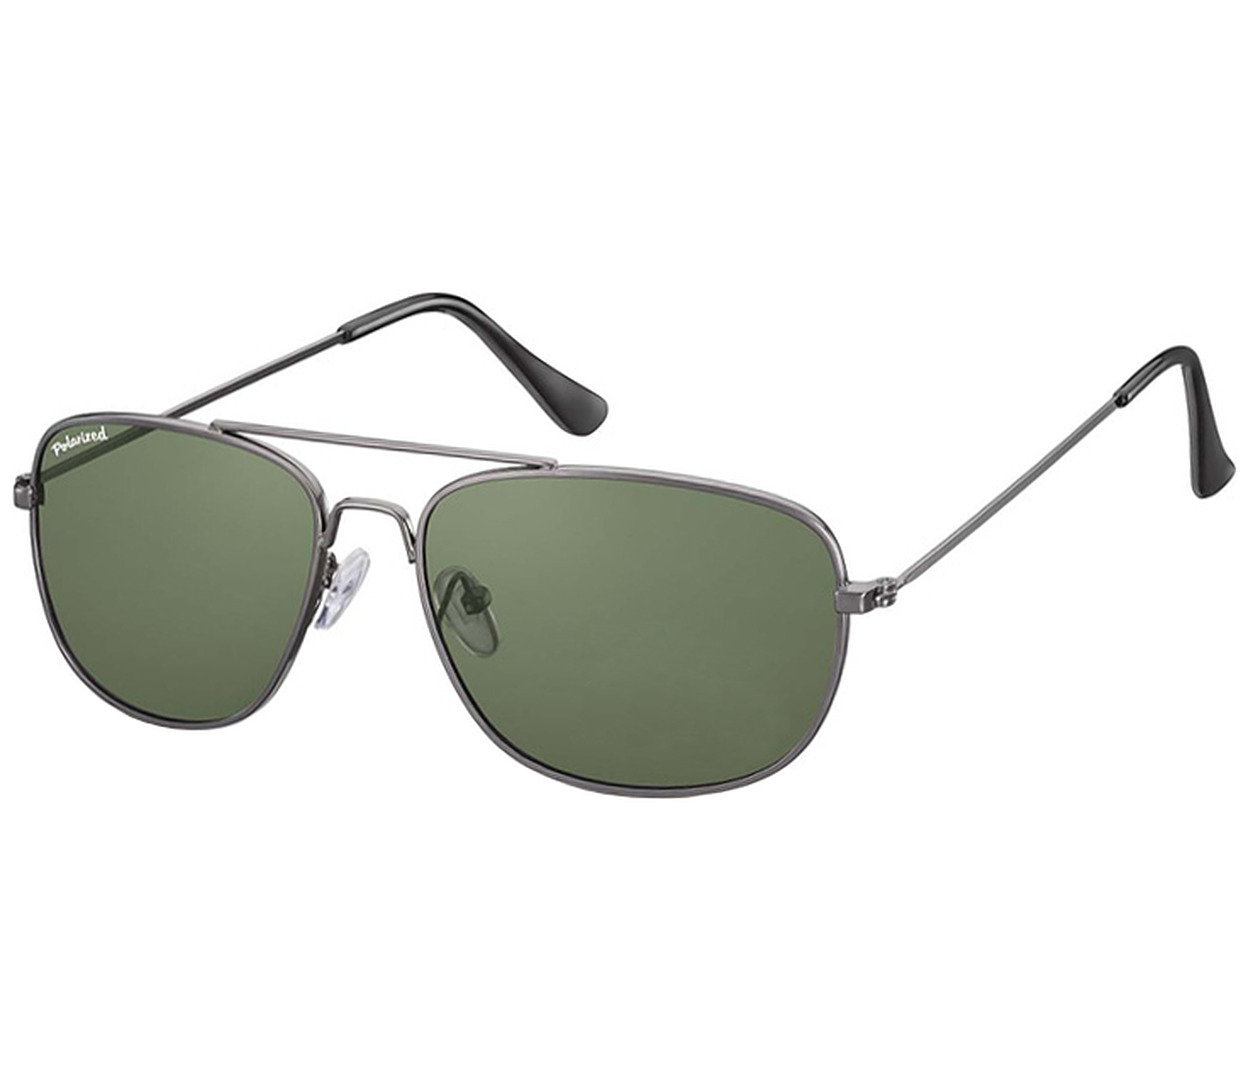 Main Image (Angle) - Savanna (Gunmetal) Aviator Sunglasses